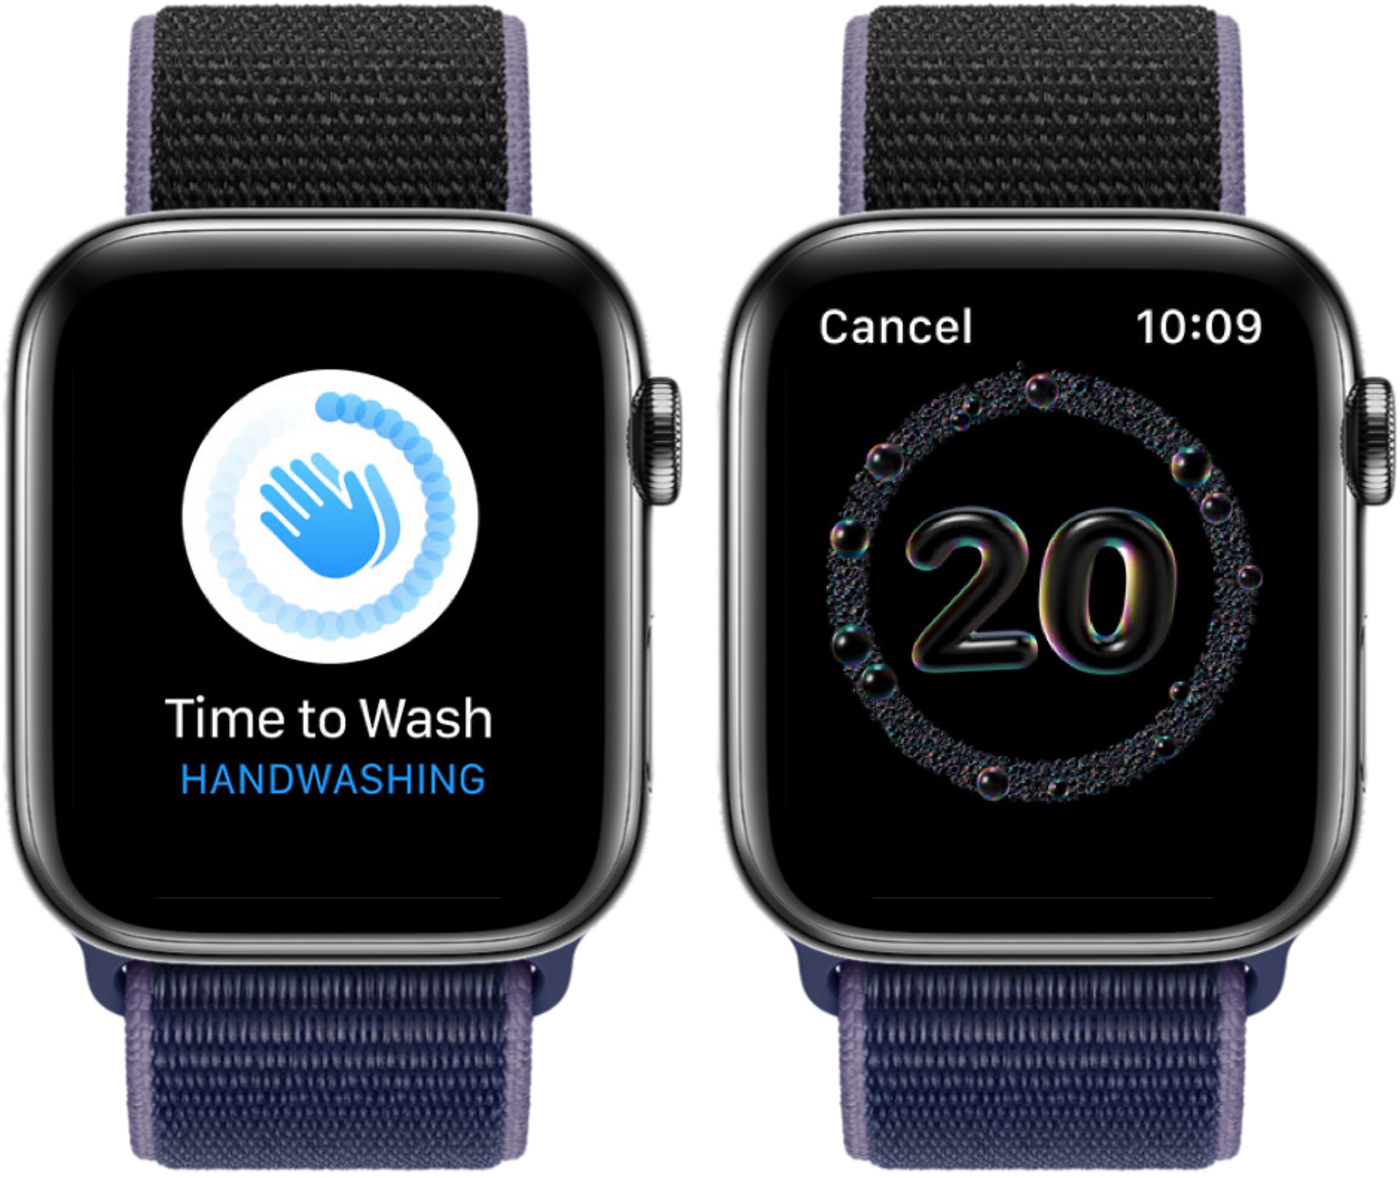 applewatchhandwashing